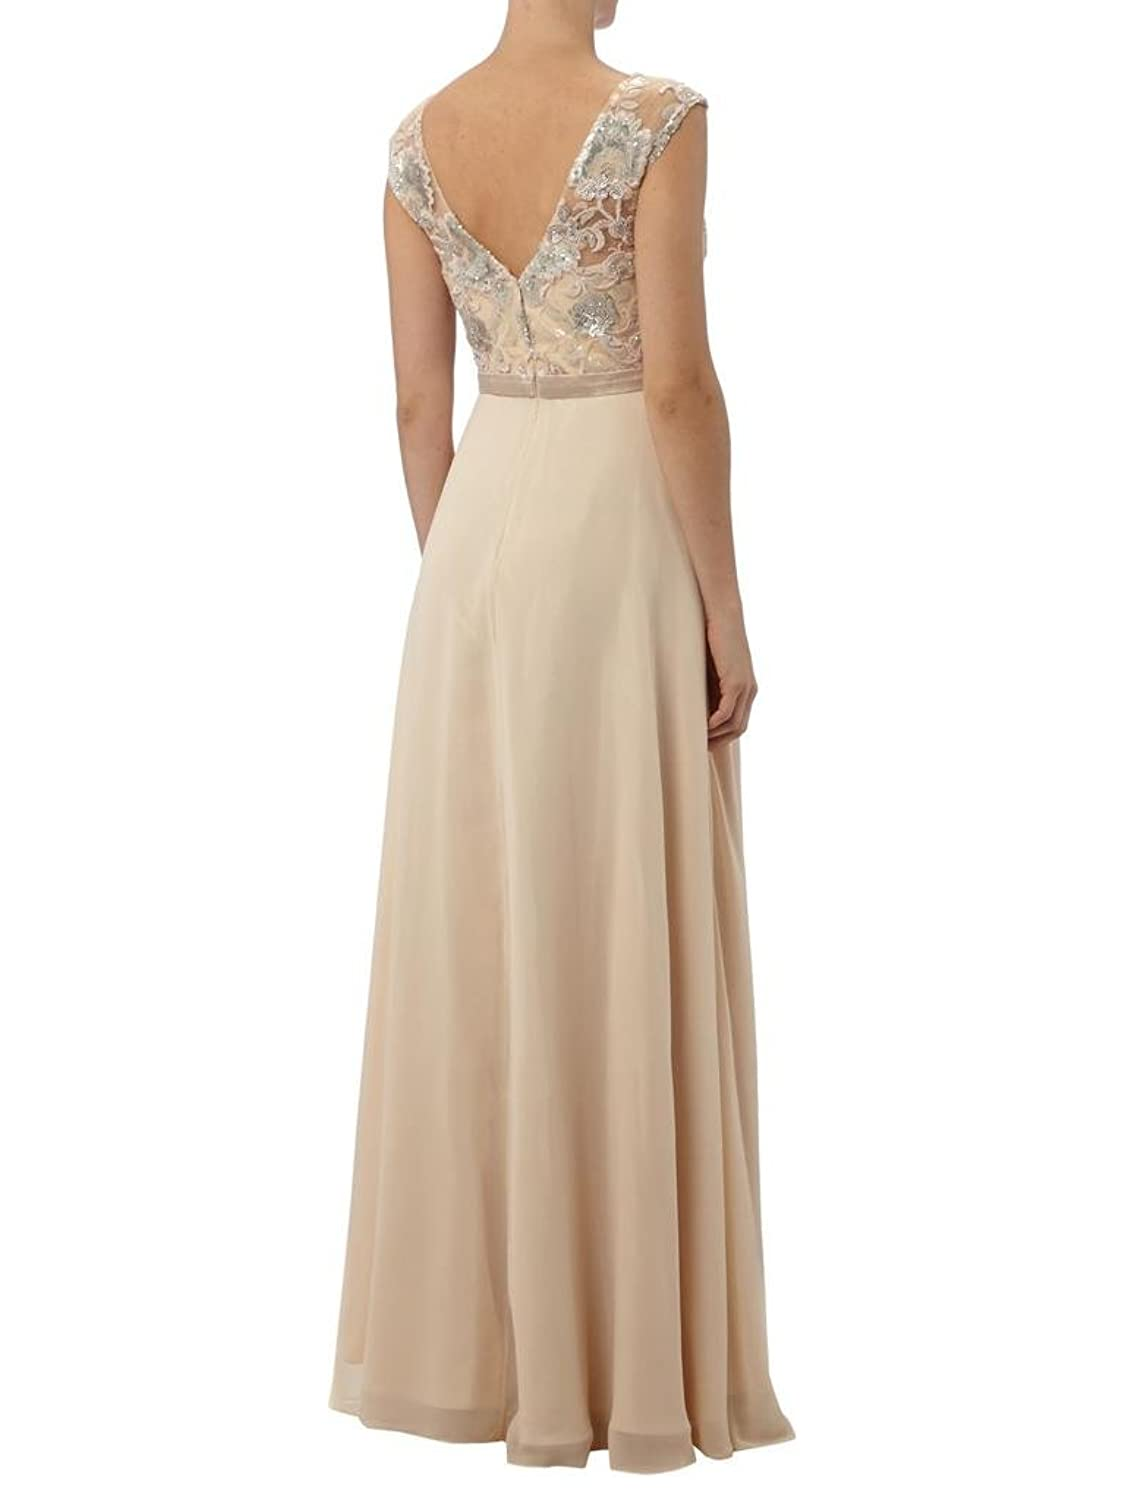 Charm Bridal Chiffon Lace Women Evening Dresses Mother of Bride Sleeveless Long